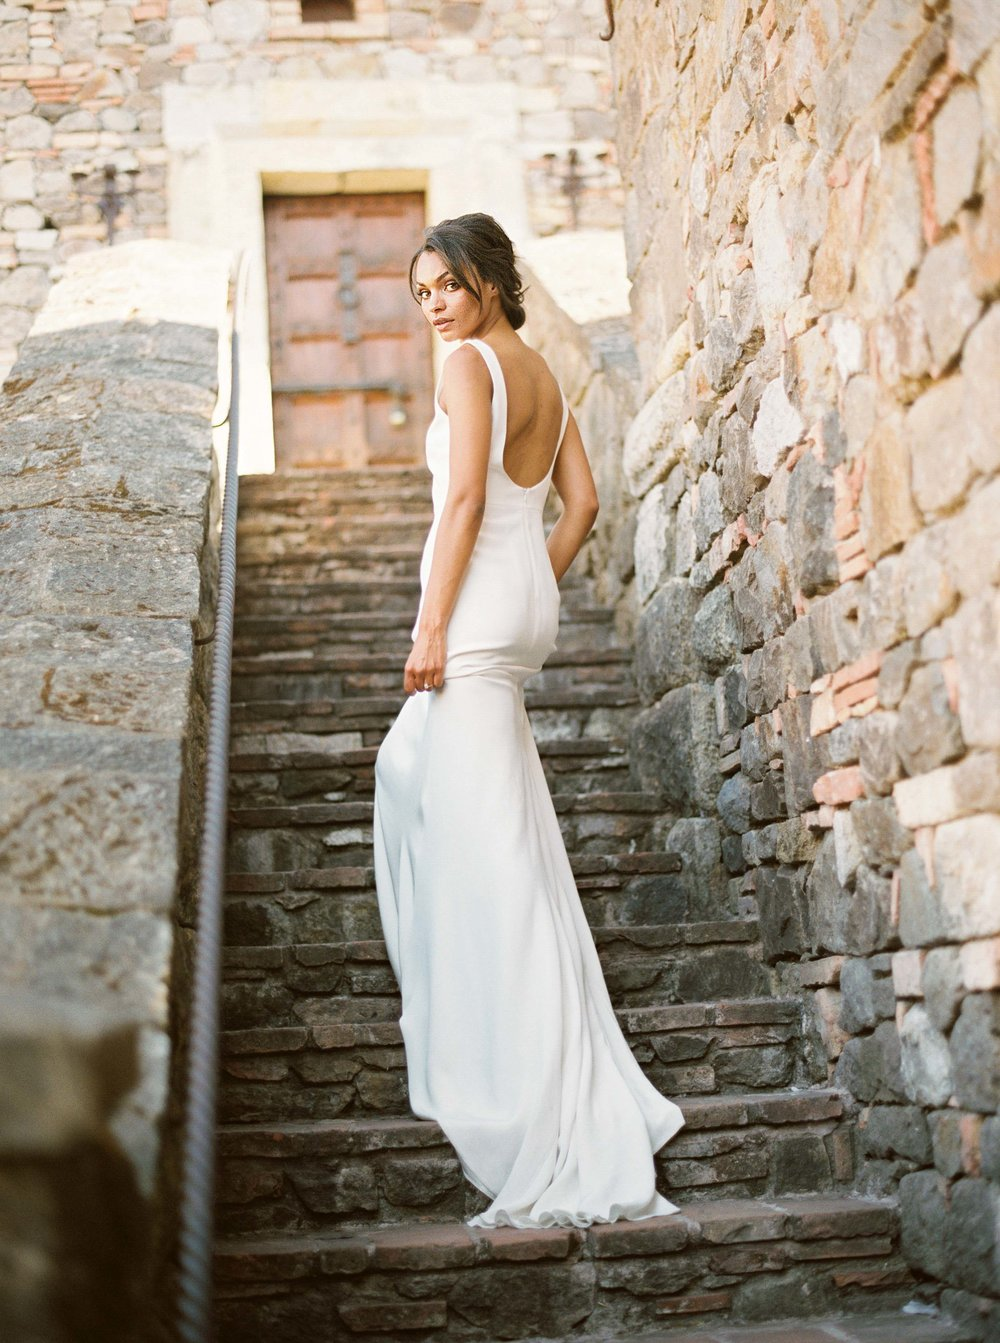 014napa_wedding_photographer_and_videographer_destination_and_elopement_photography.jpg